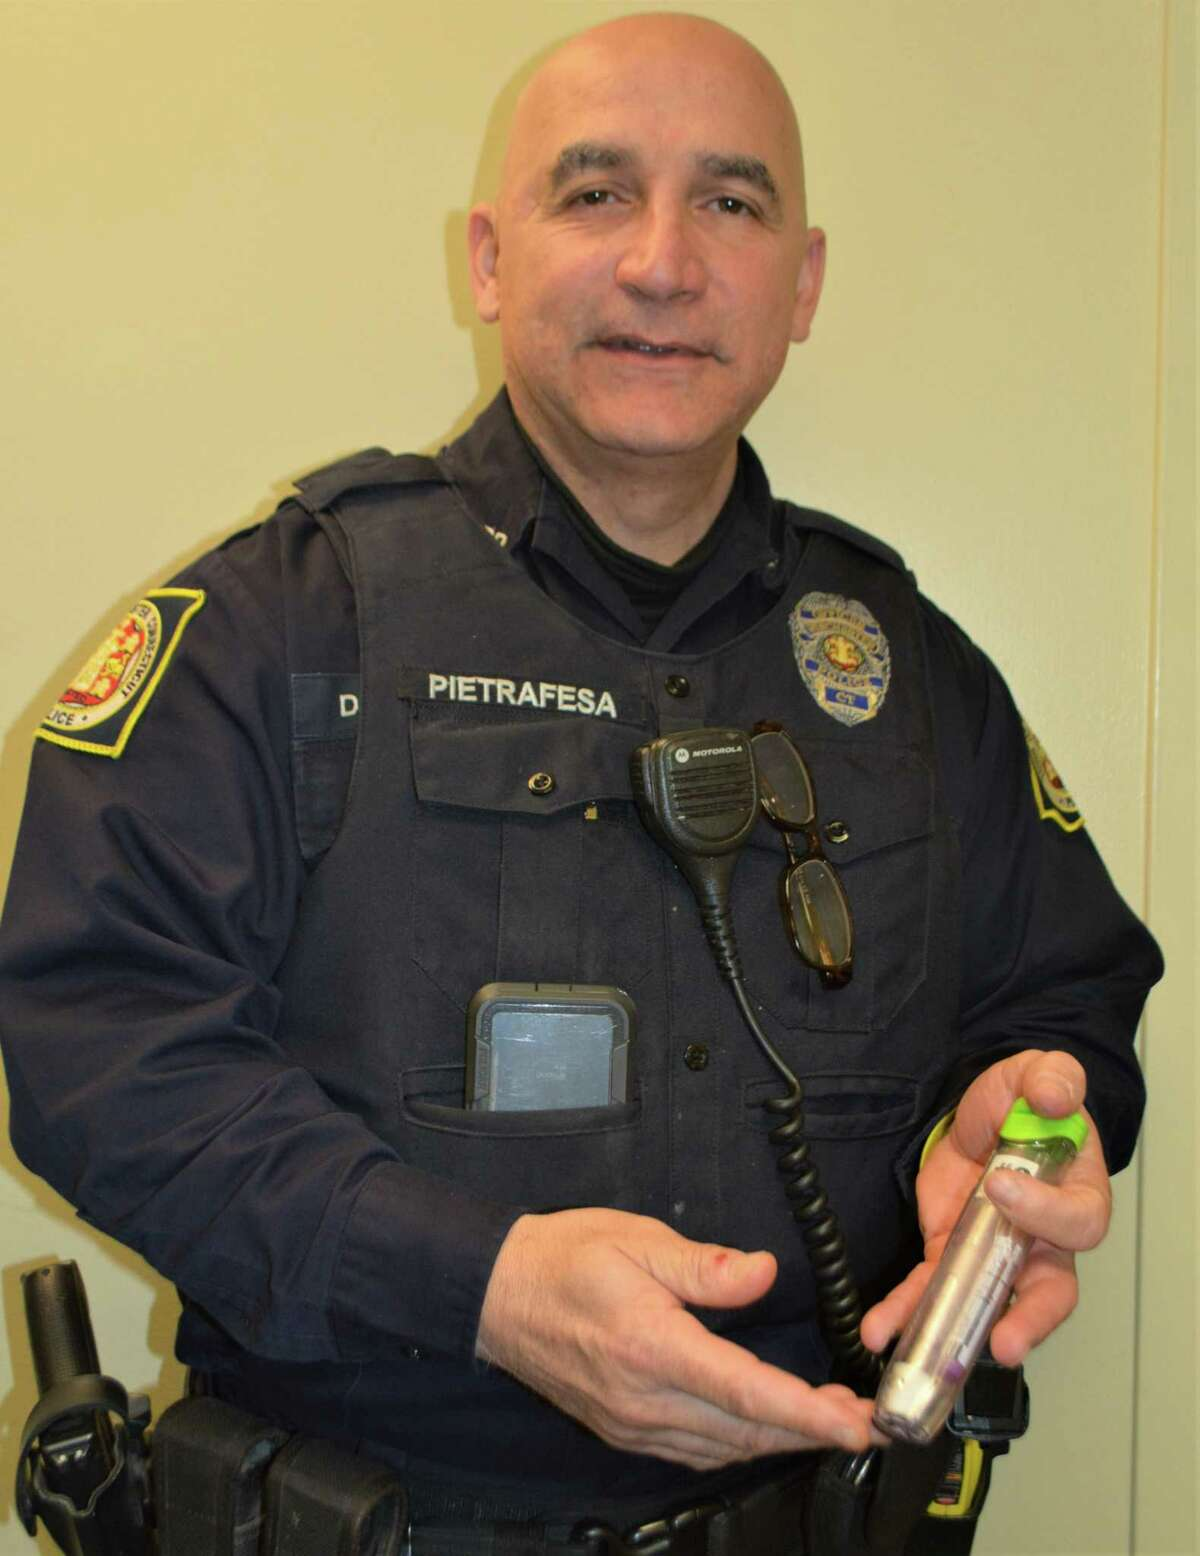 All Winsted Police Officers carry Narcan to prevent overdose deaths